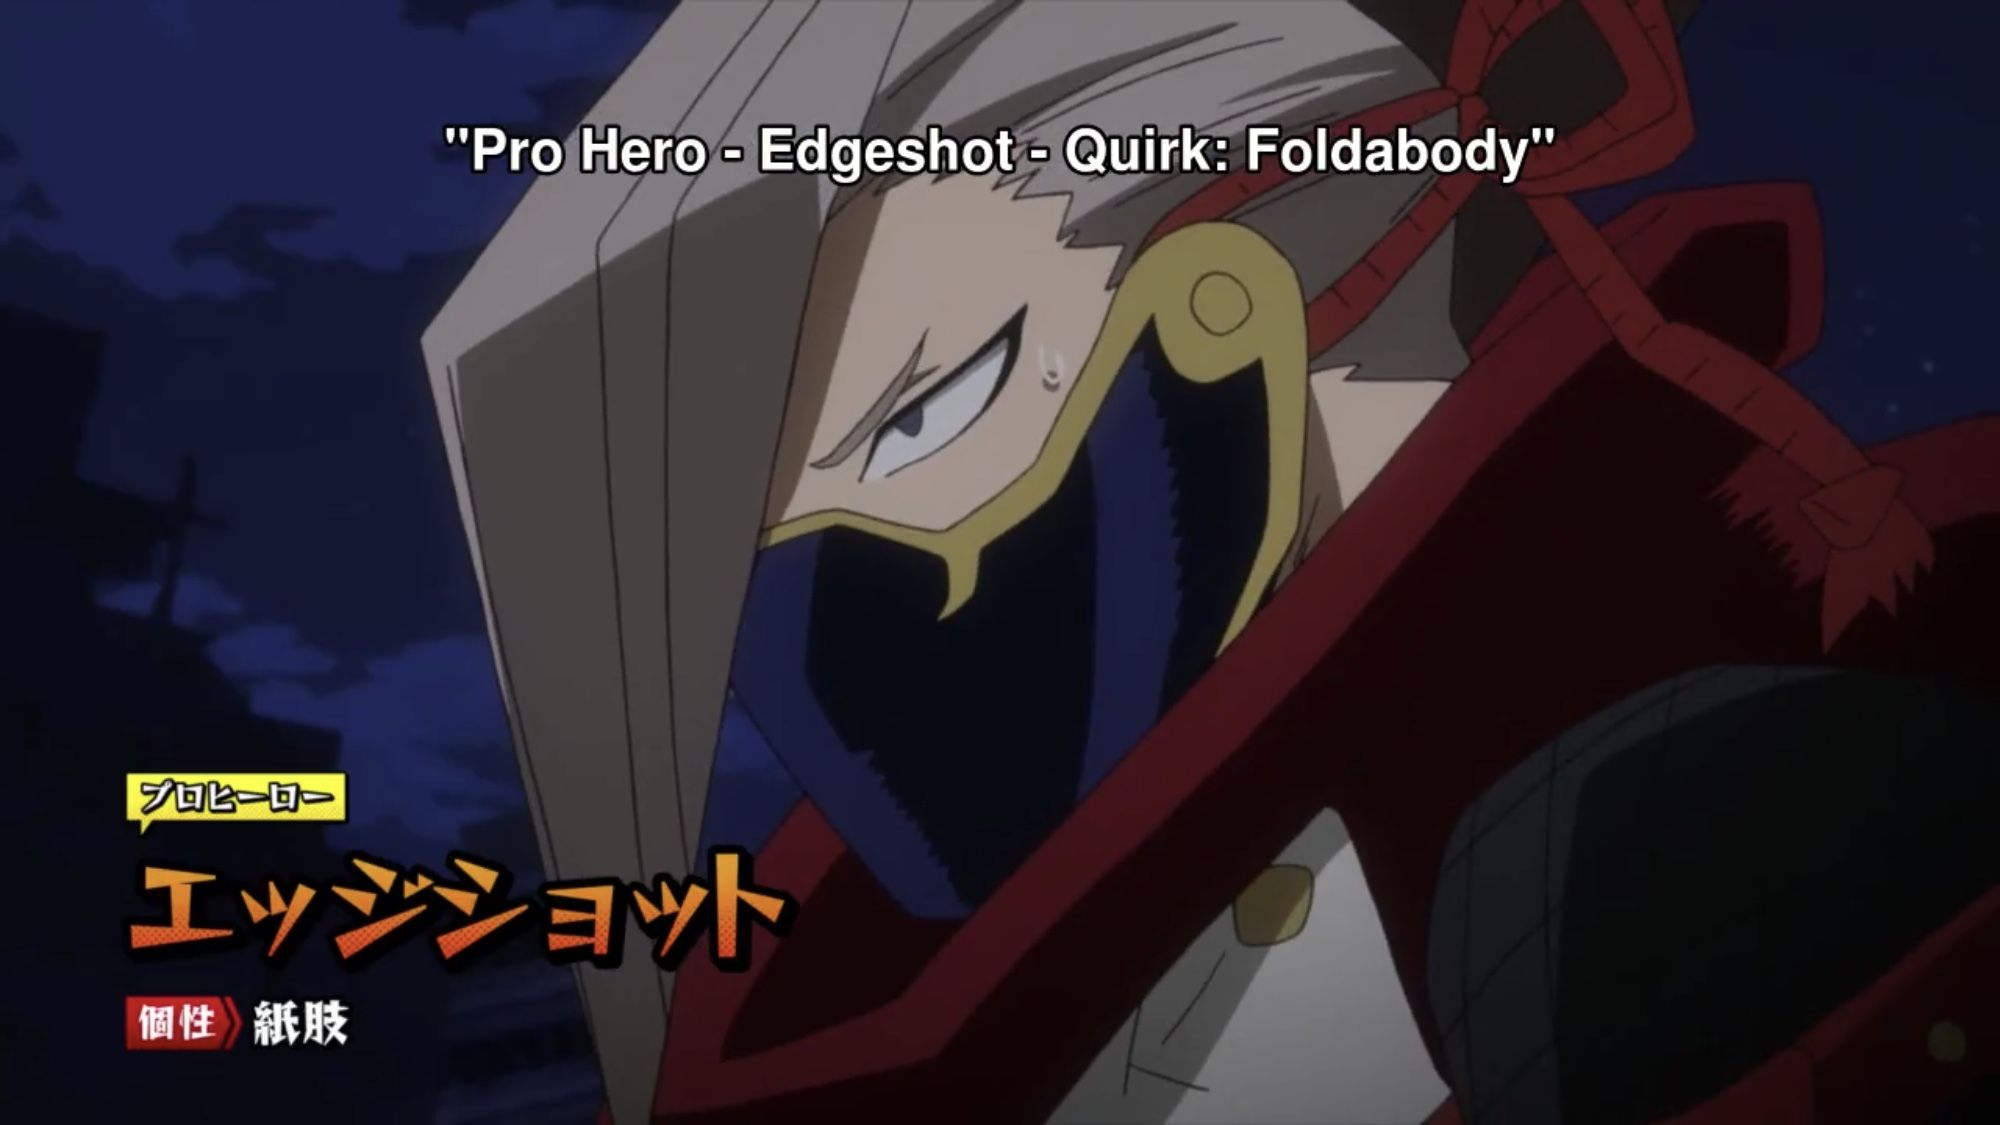 Wish To See More Edgeshot My Hero Hero Academia Characters Anime Nerd